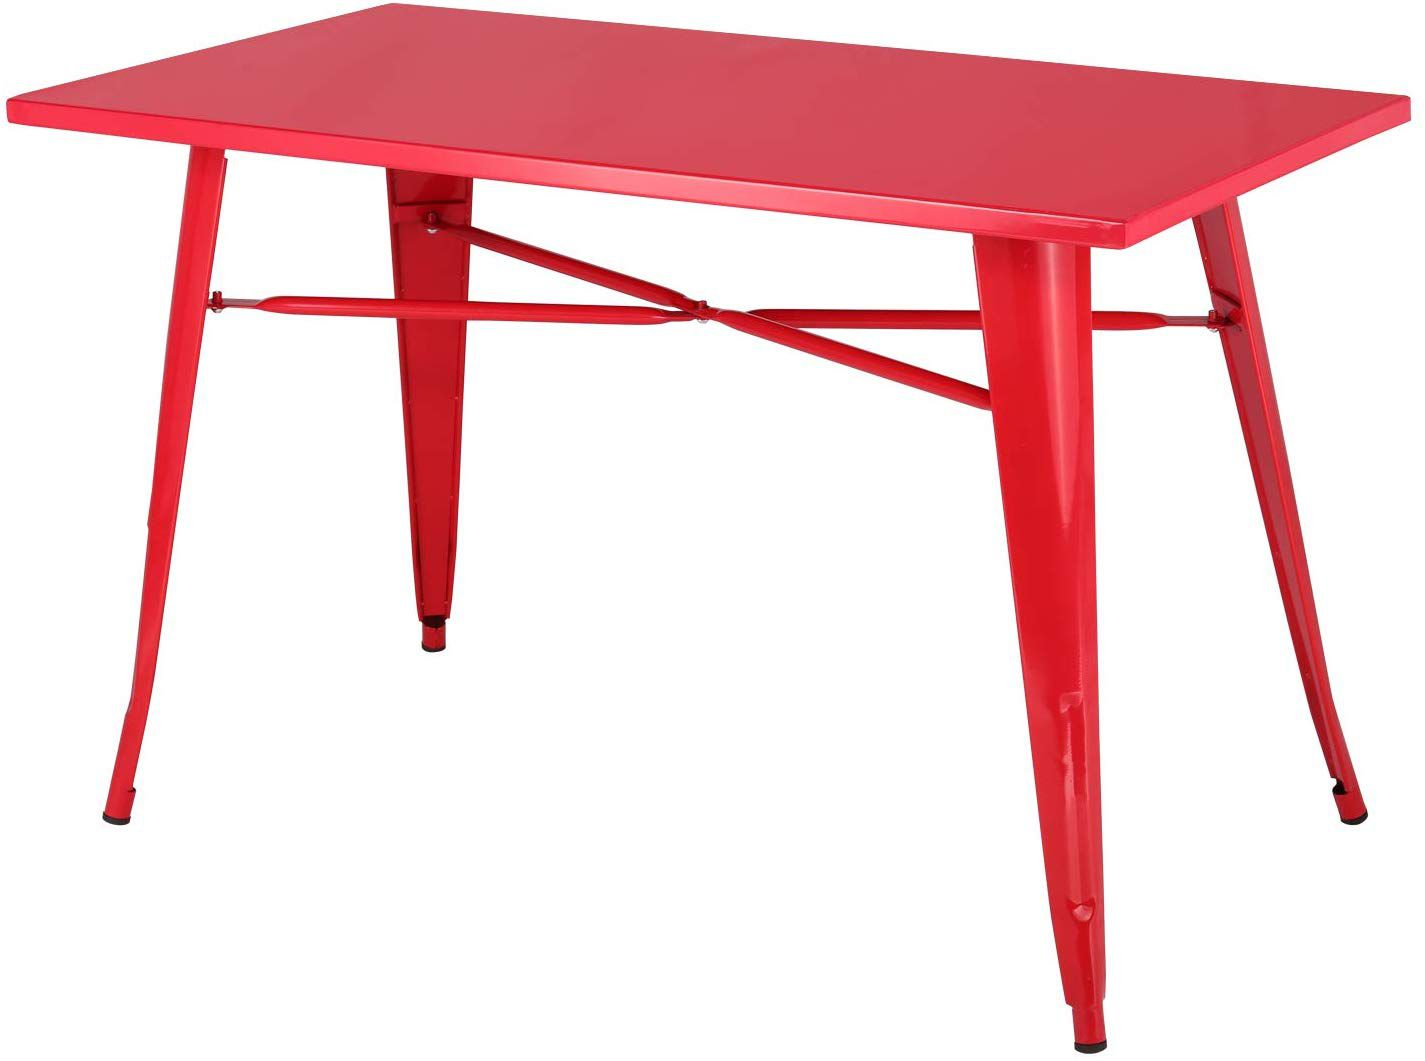 A red metal rectangular dining table with four legs connected by an X base.